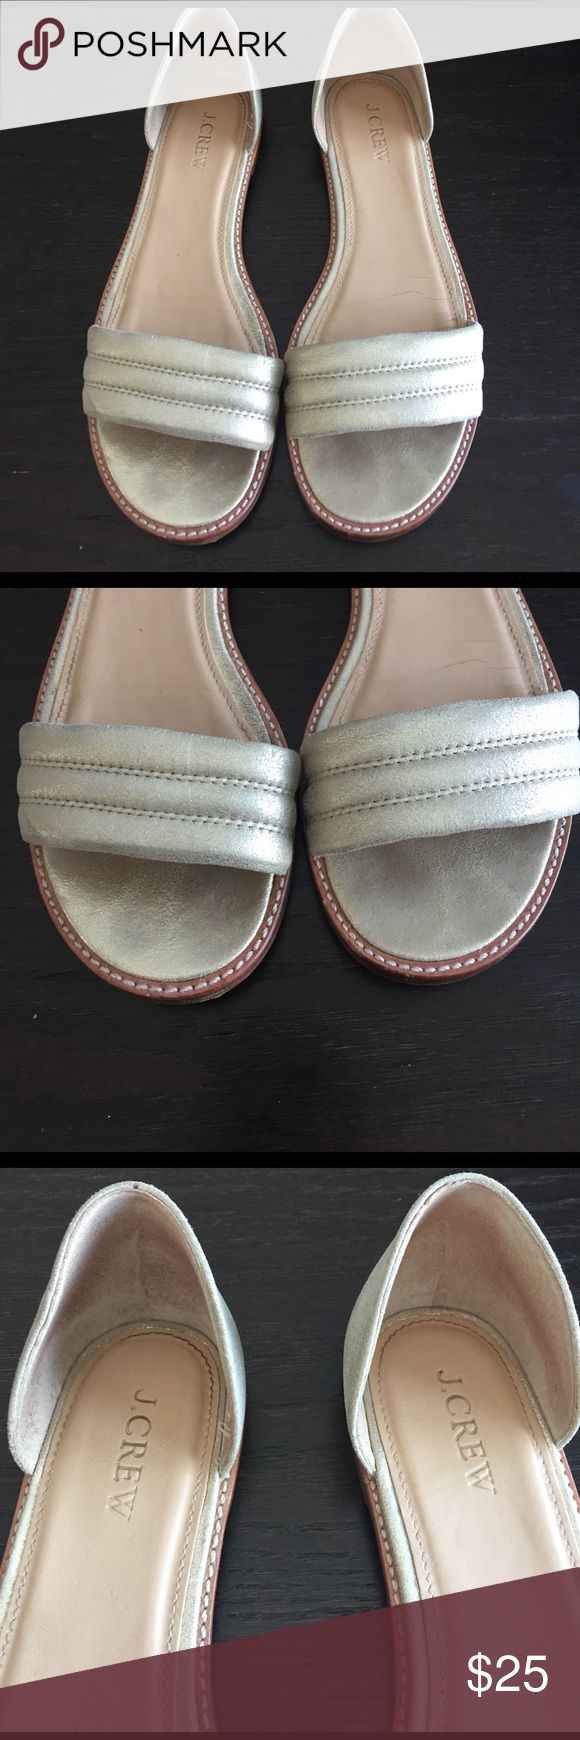 J.Crew Gold flat sandals J.Crew Gold flat sandals!! Great sandals for the summer. Sandals are in good condition. Size 7.5 J. Crew Shoes Sandals